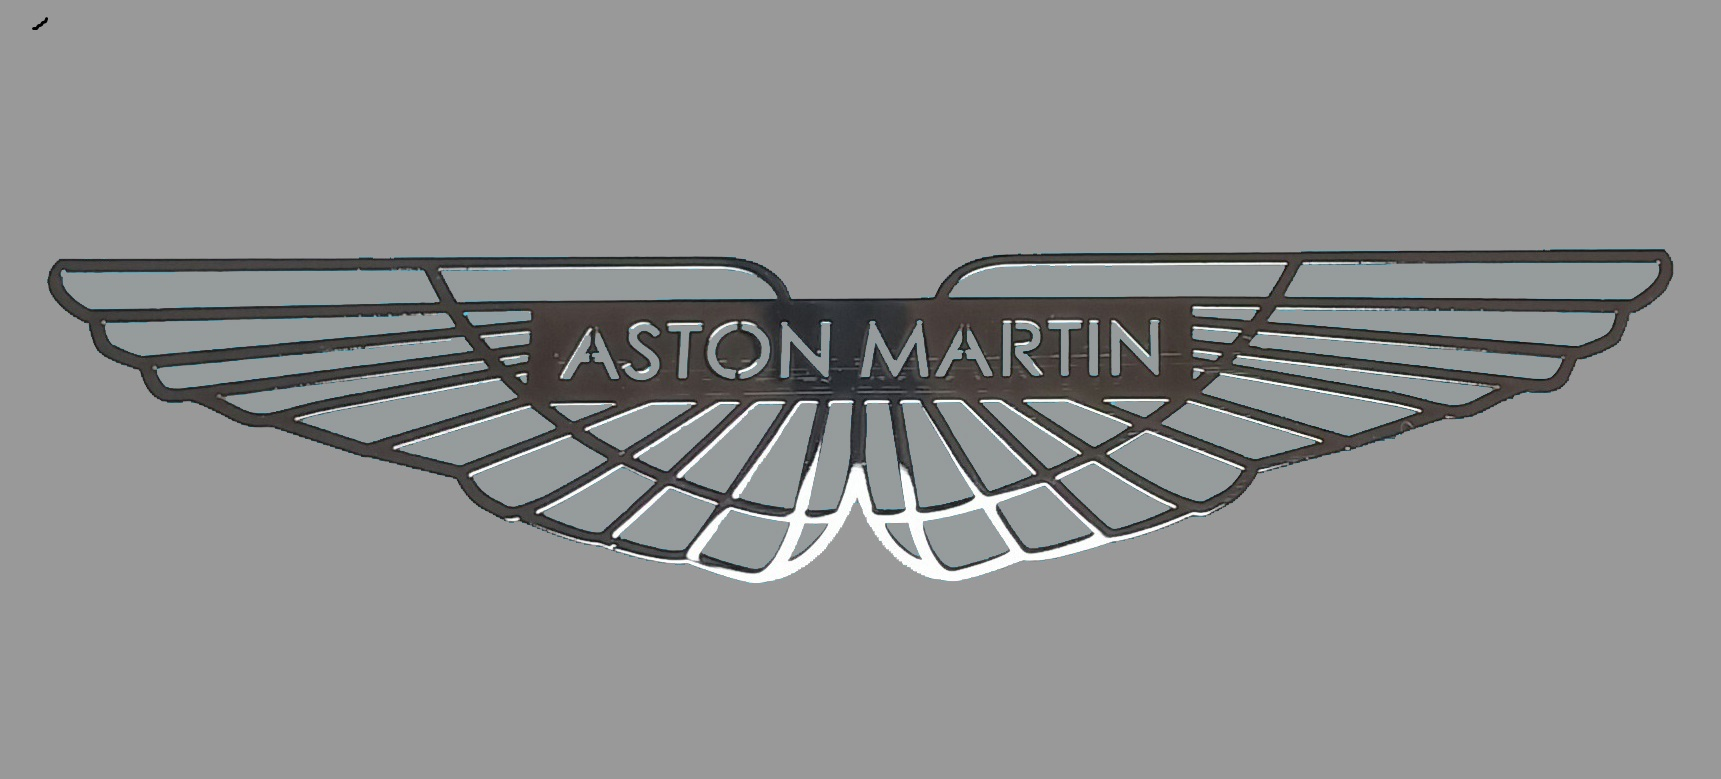 ASTON MARTIN LOGO nalepka Metal Edition 70 x 15 mm